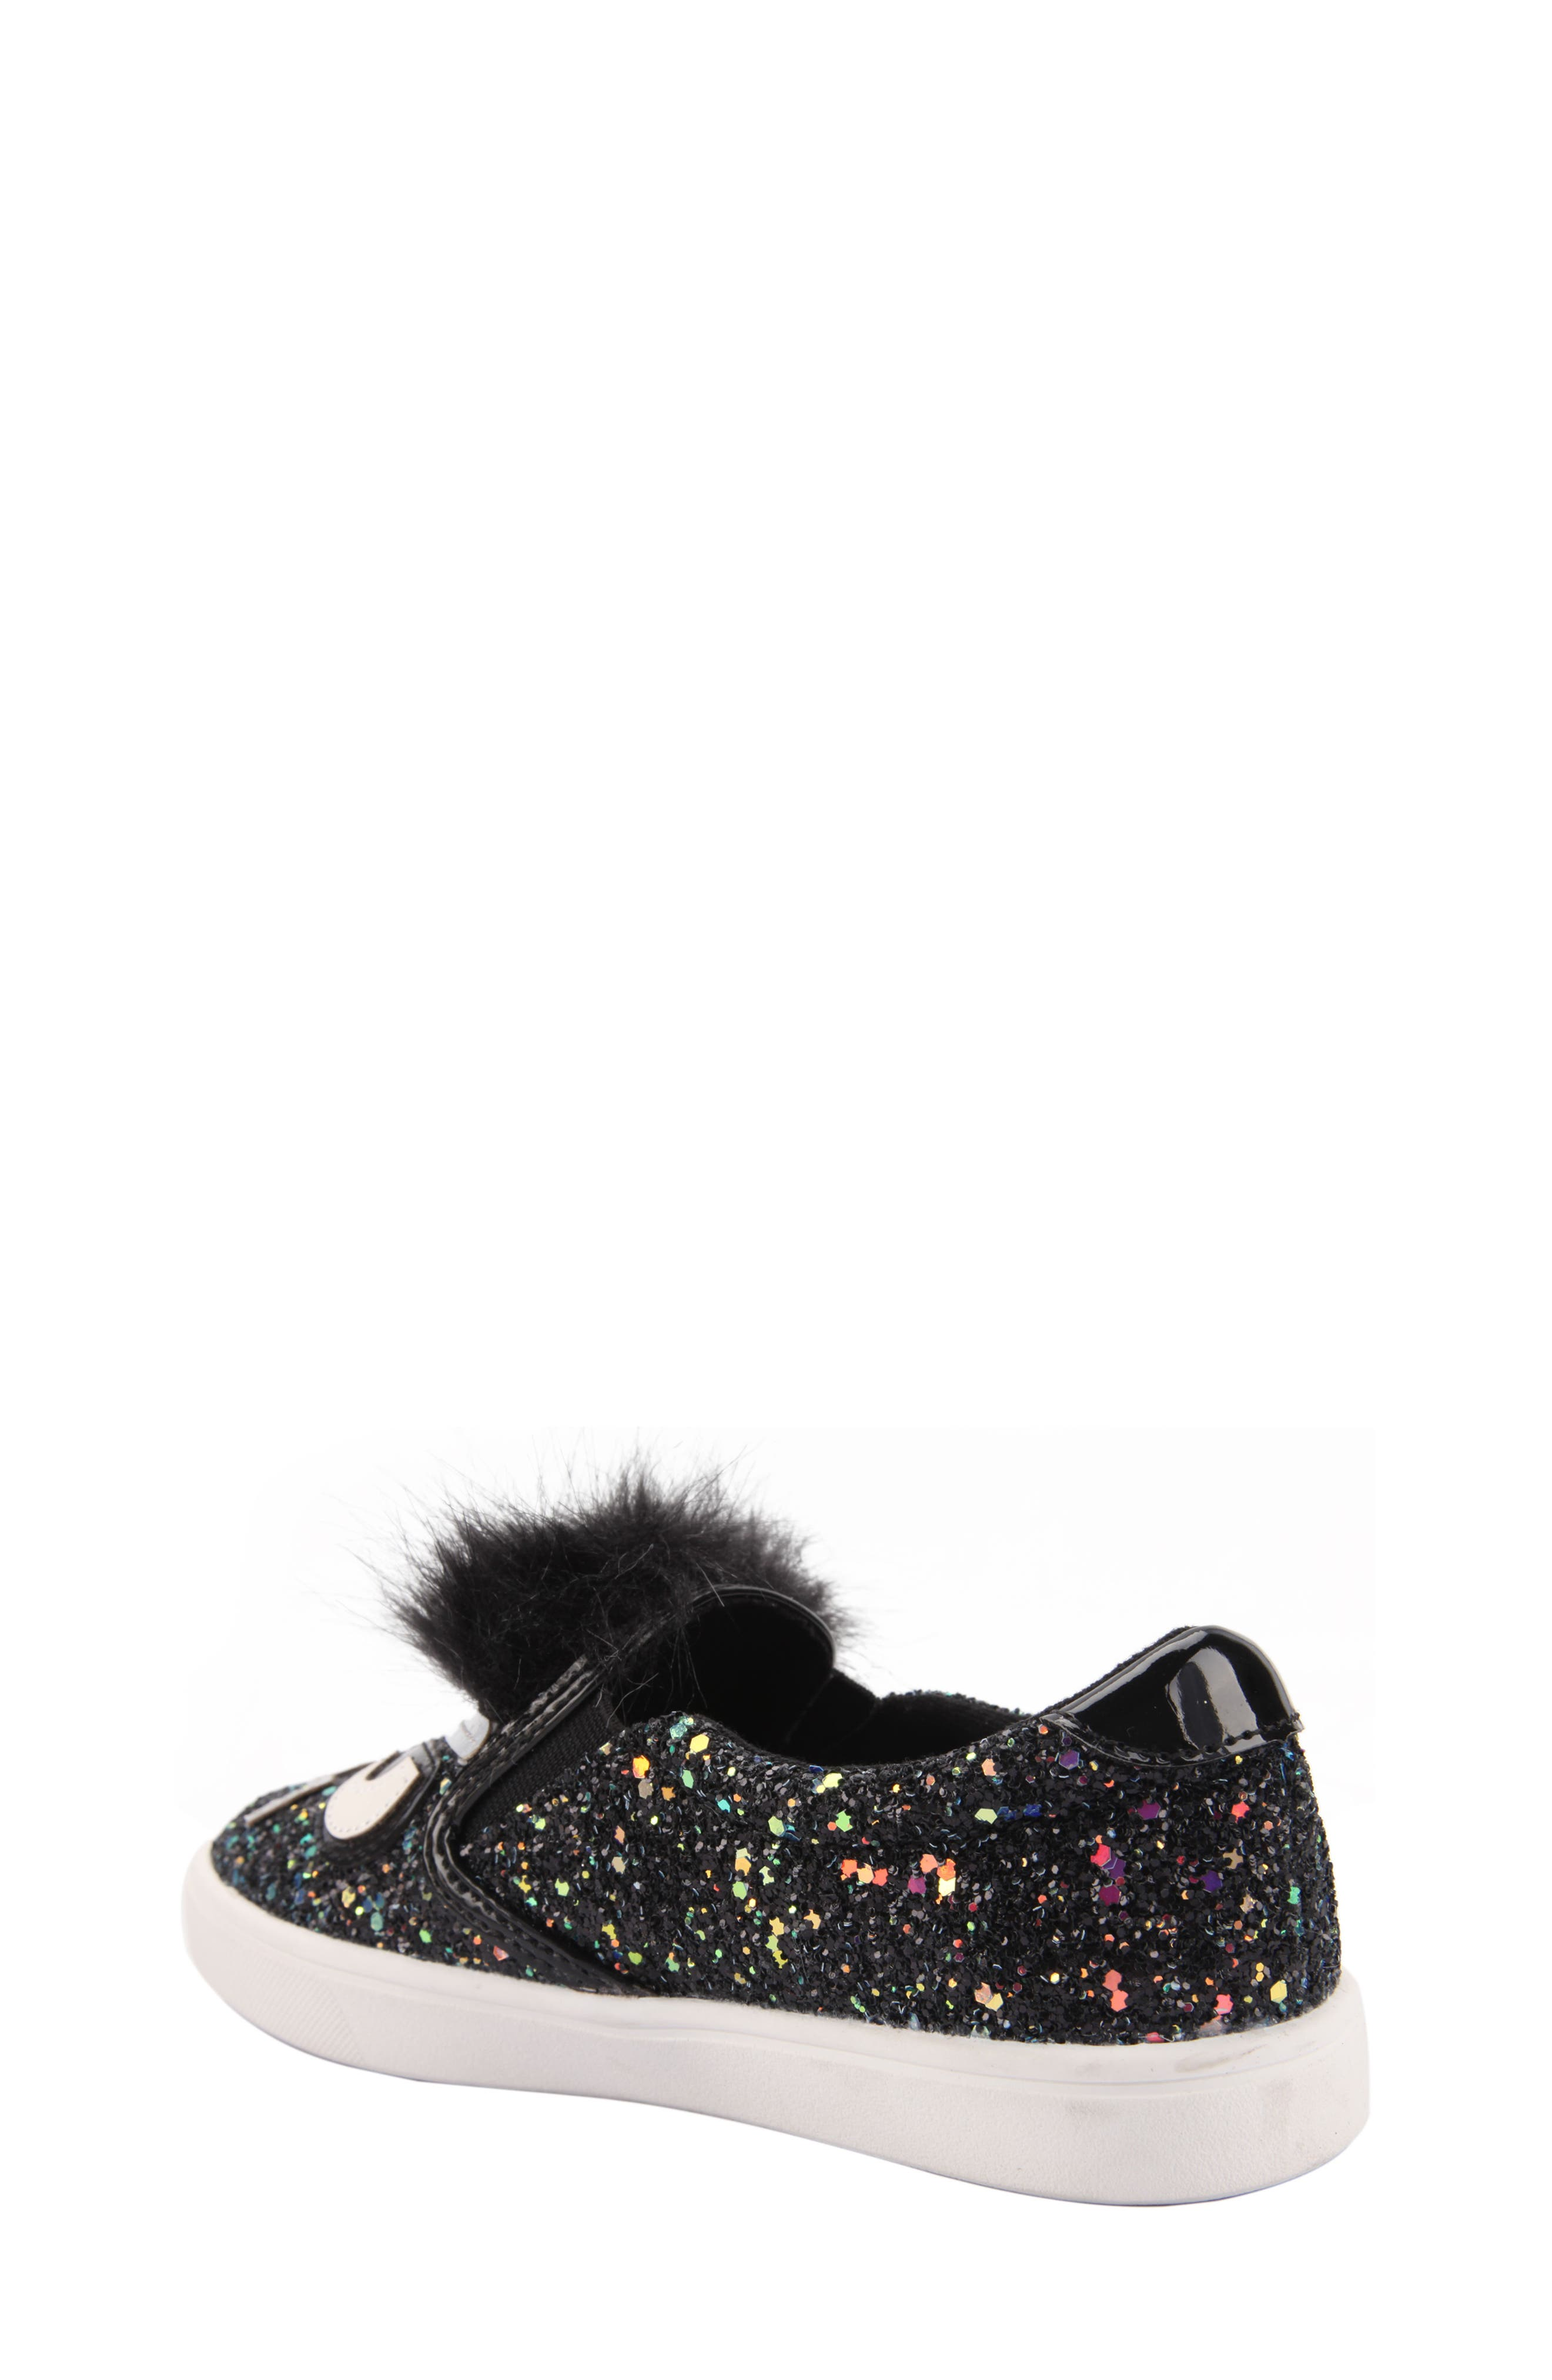 Alyx Faux Fur Glittery Slip-On Sneaker,                             Alternate thumbnail 2, color,                             Black Chunky Glitter